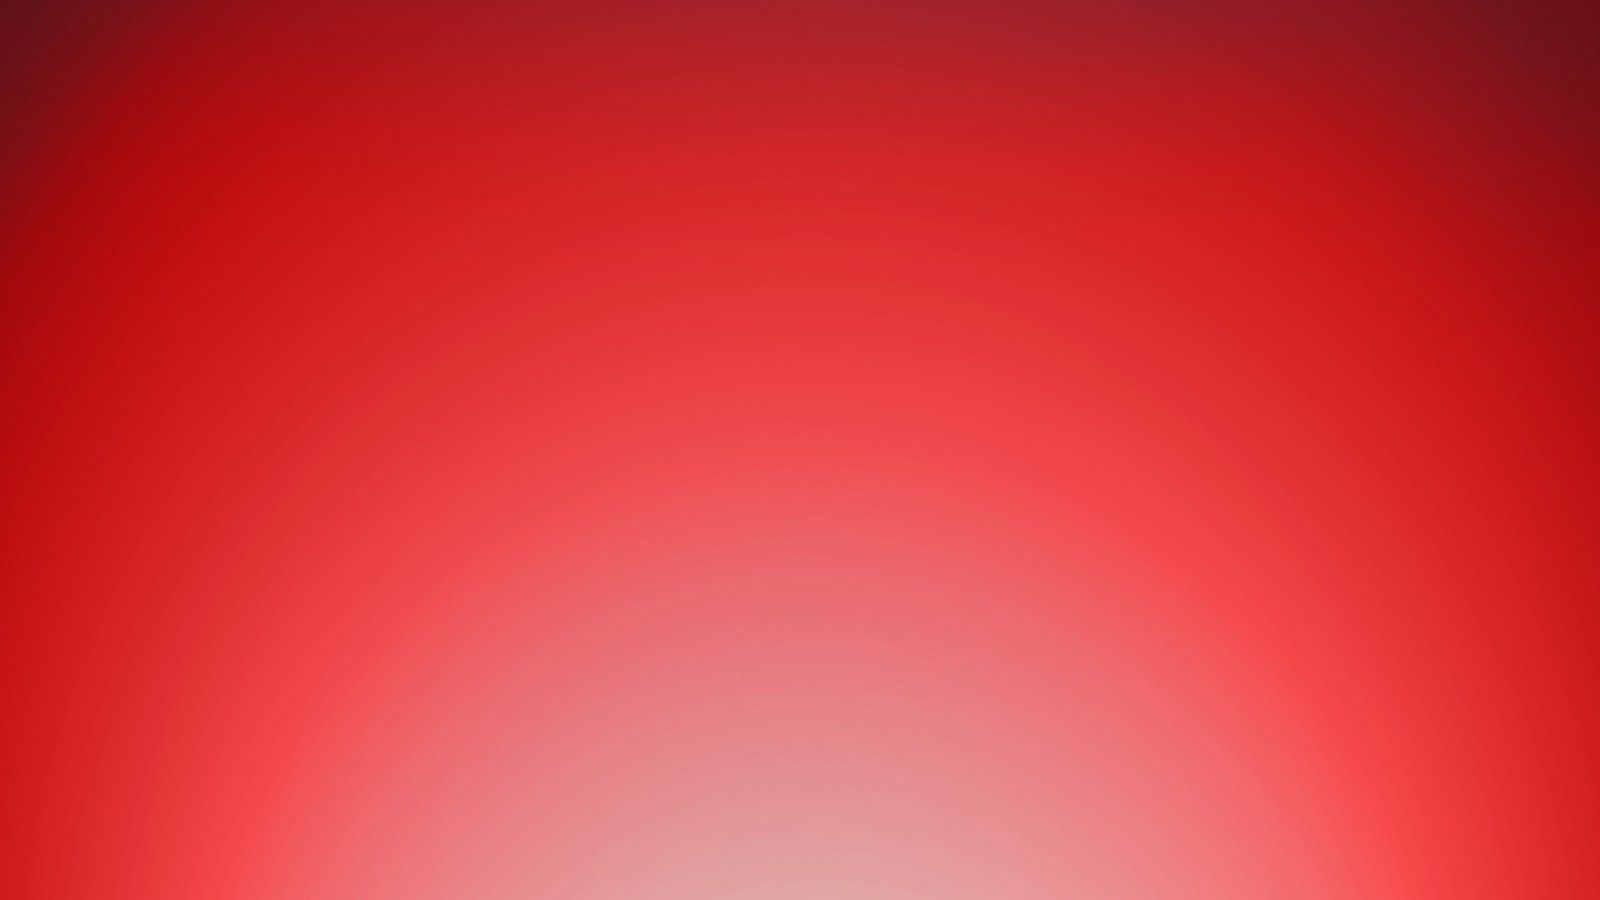 22 Image for Gadgets: Plain Red